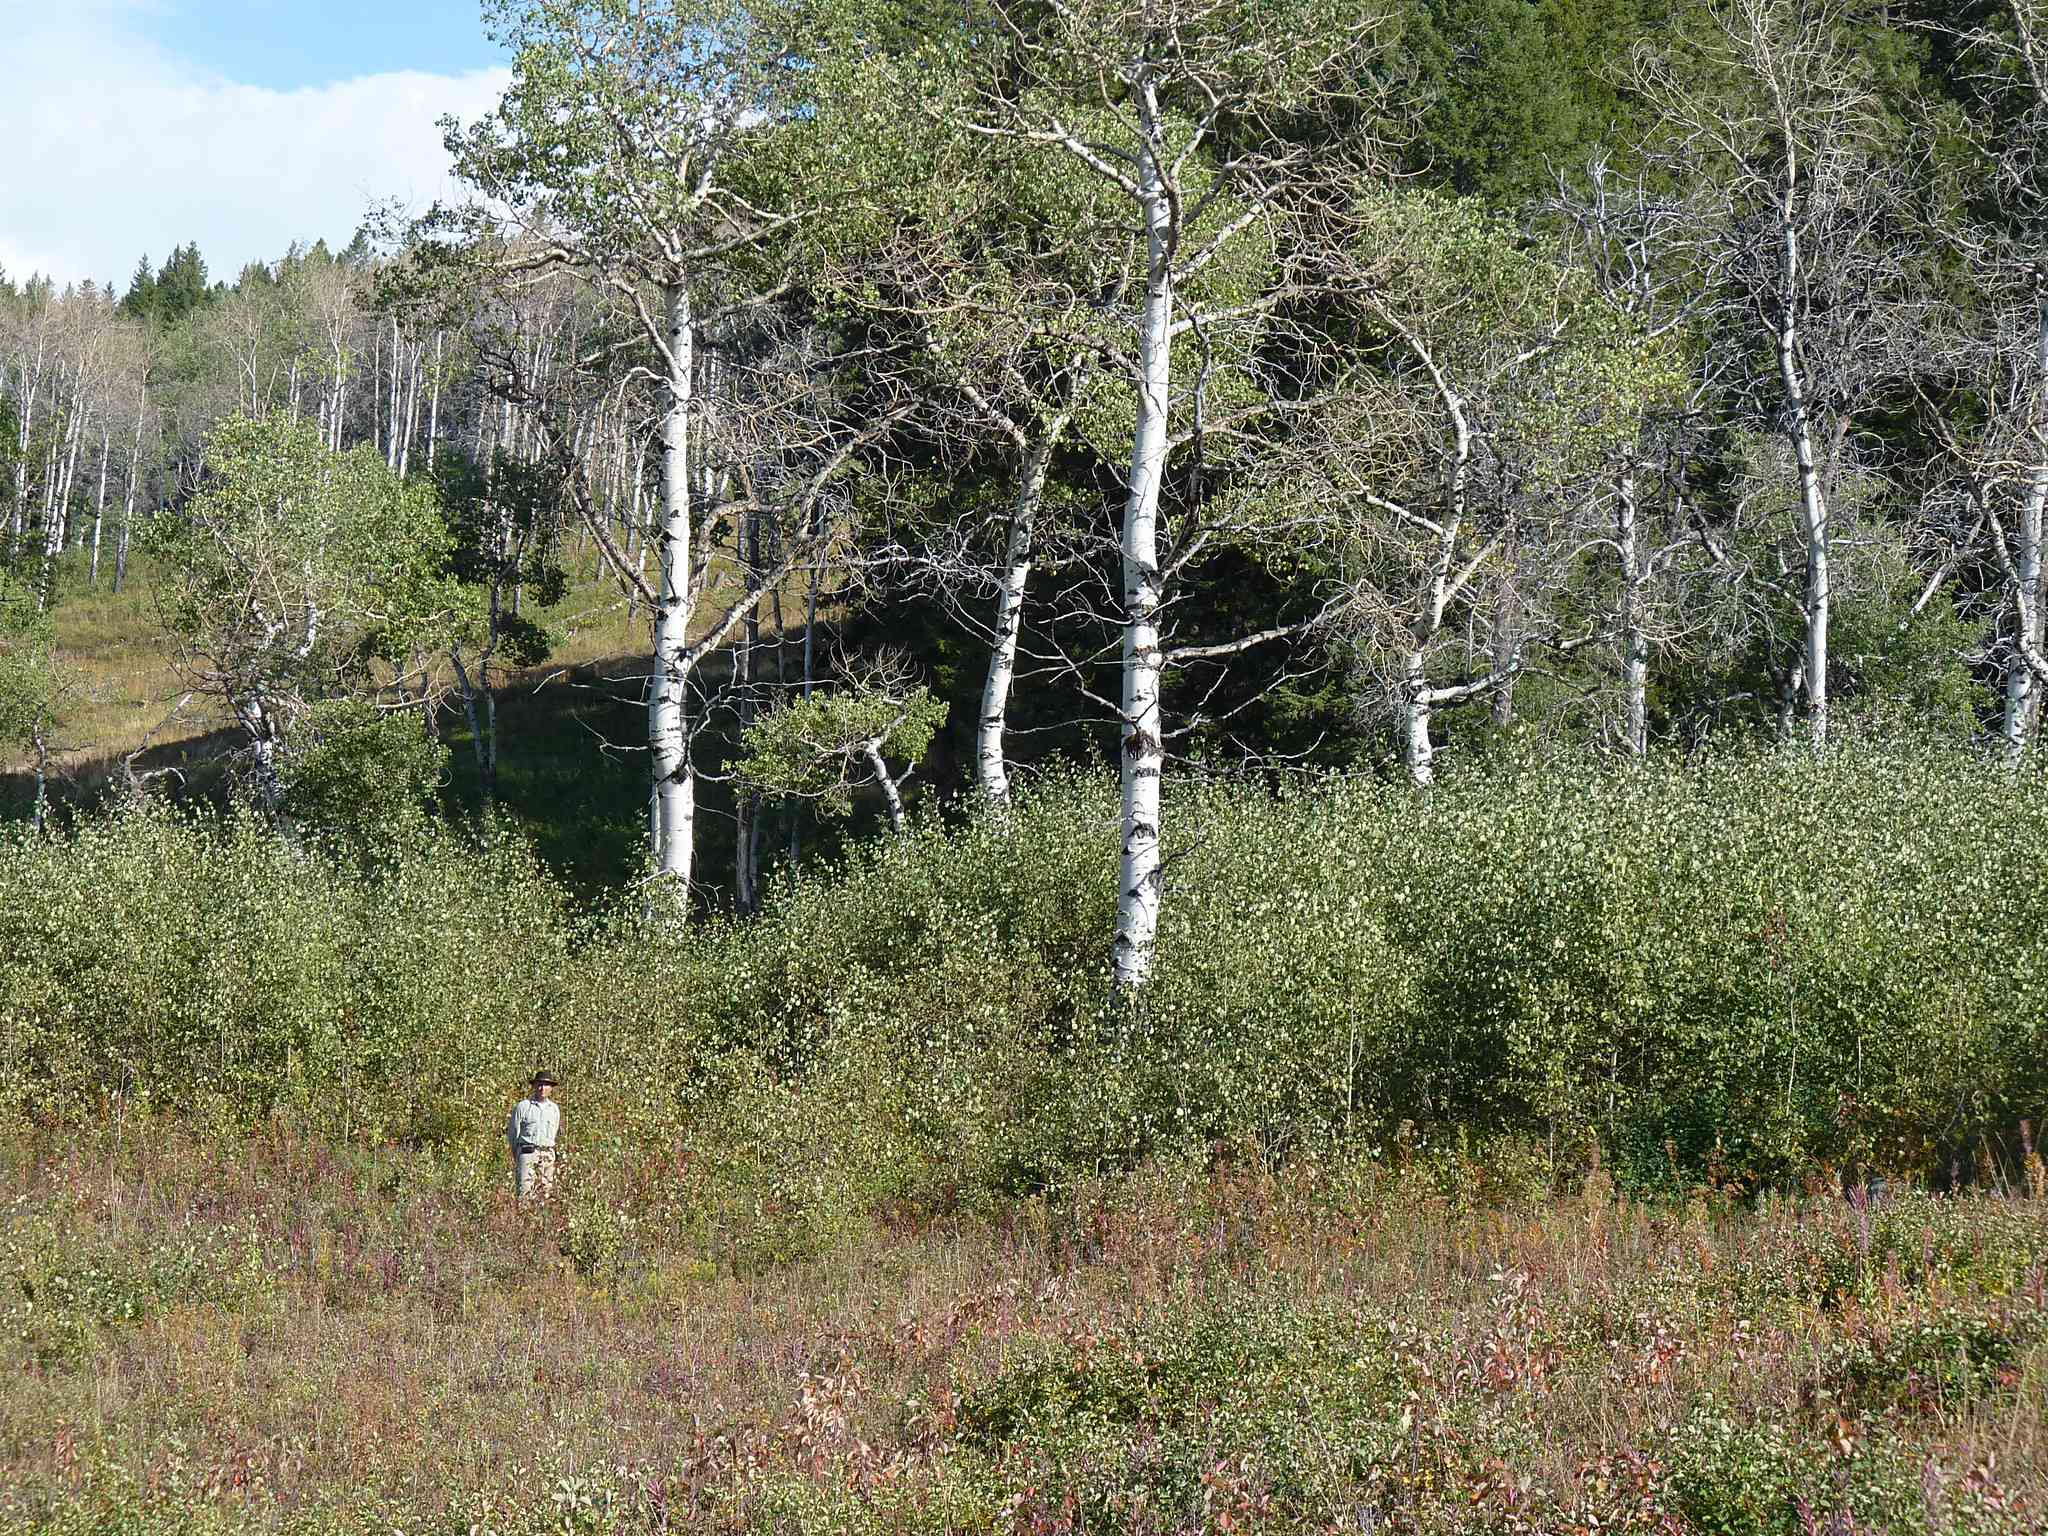 Man standing in front of young aspen trees with older trees in the background